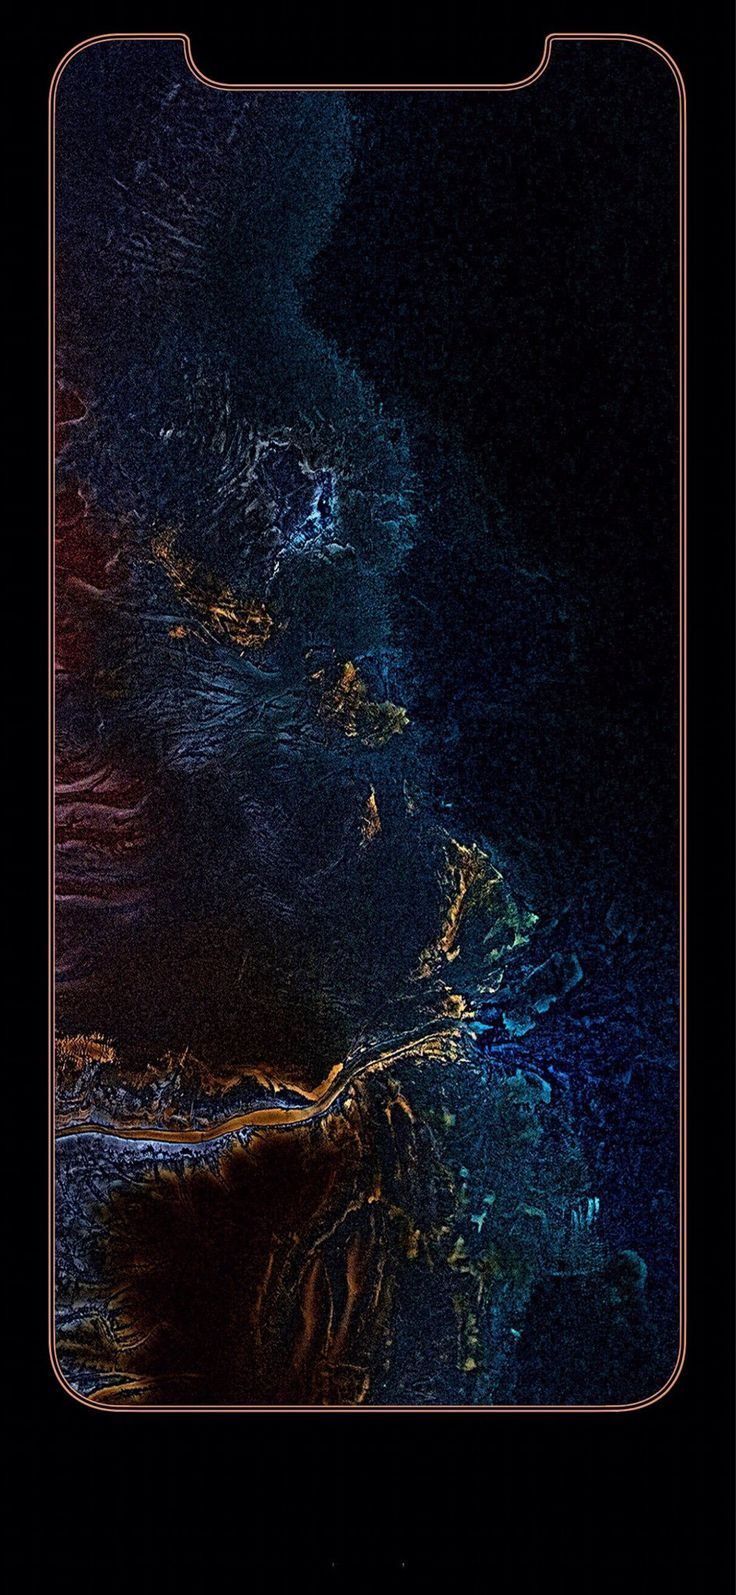 Awesome Wallpaper… By Artist Unknown… iPhone X Wallpaper